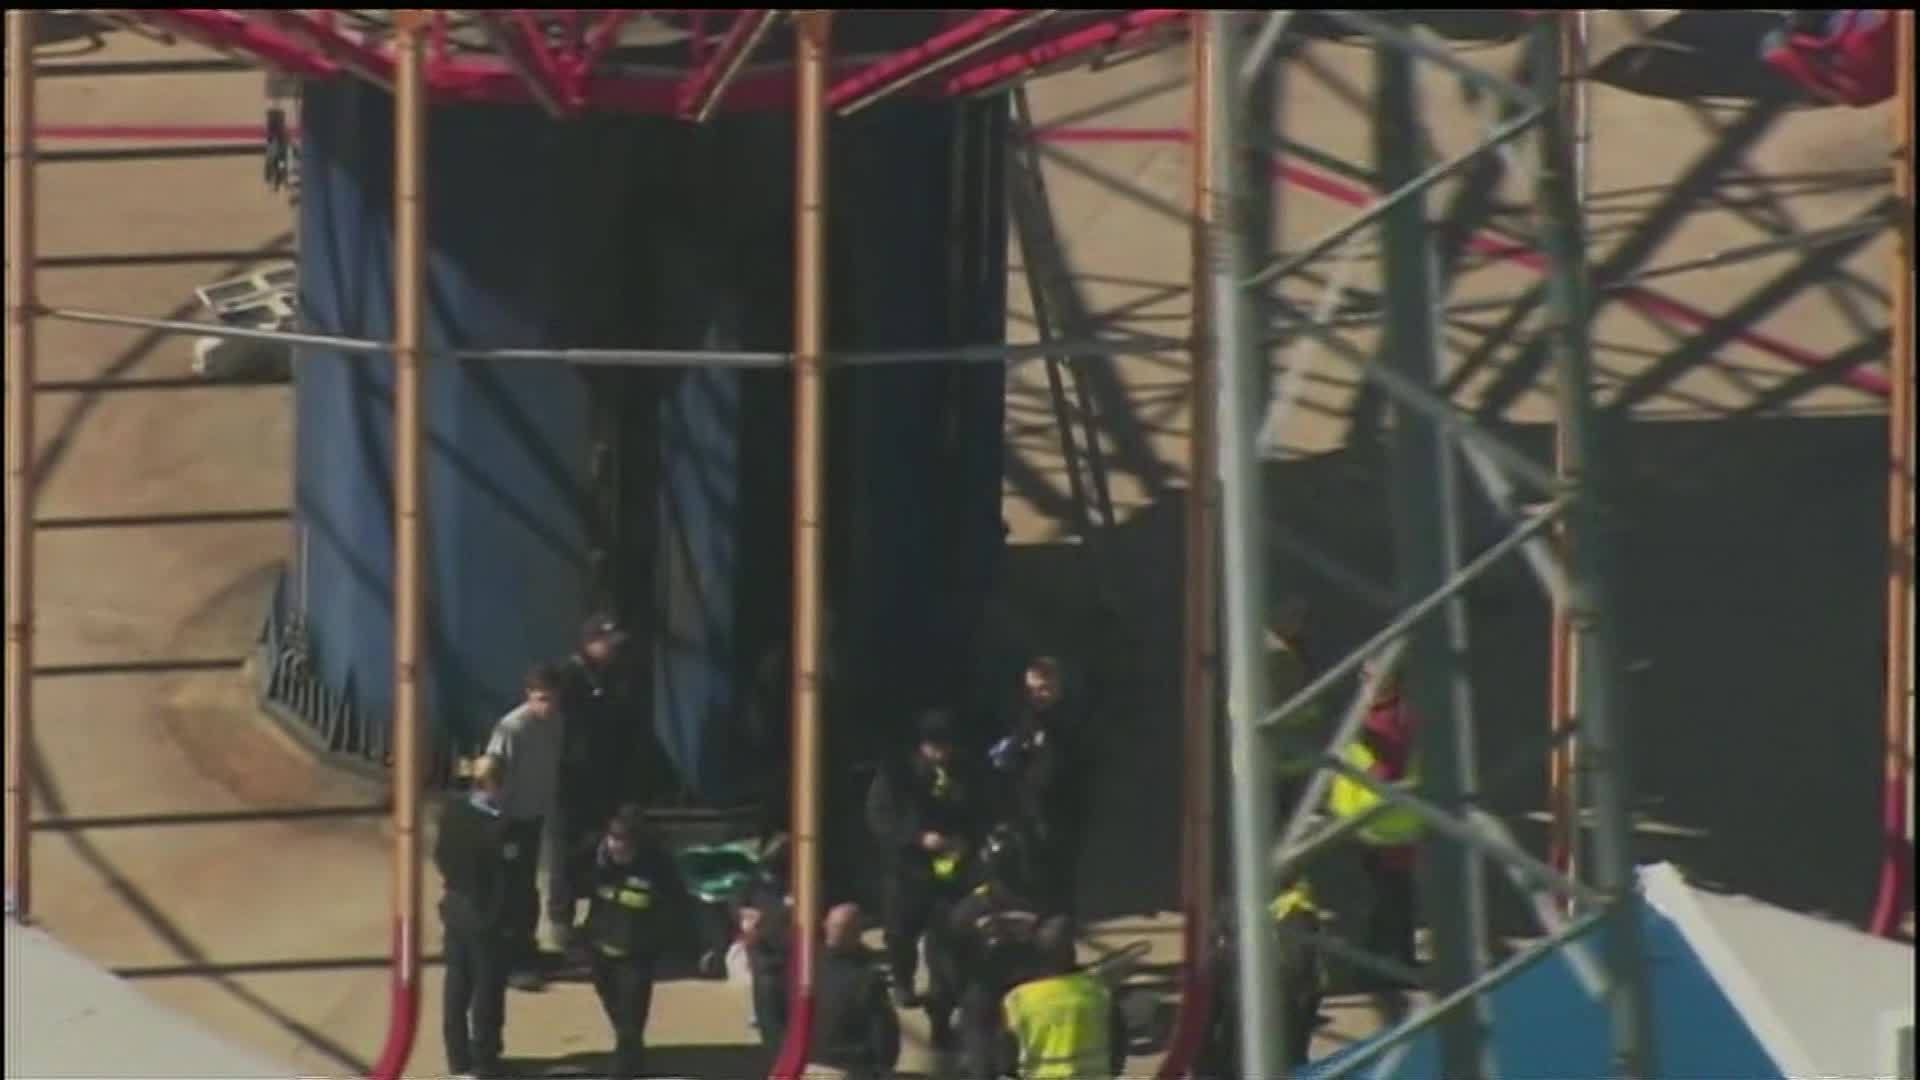 Worker's hand cut off while inspecting ride at Carowinds